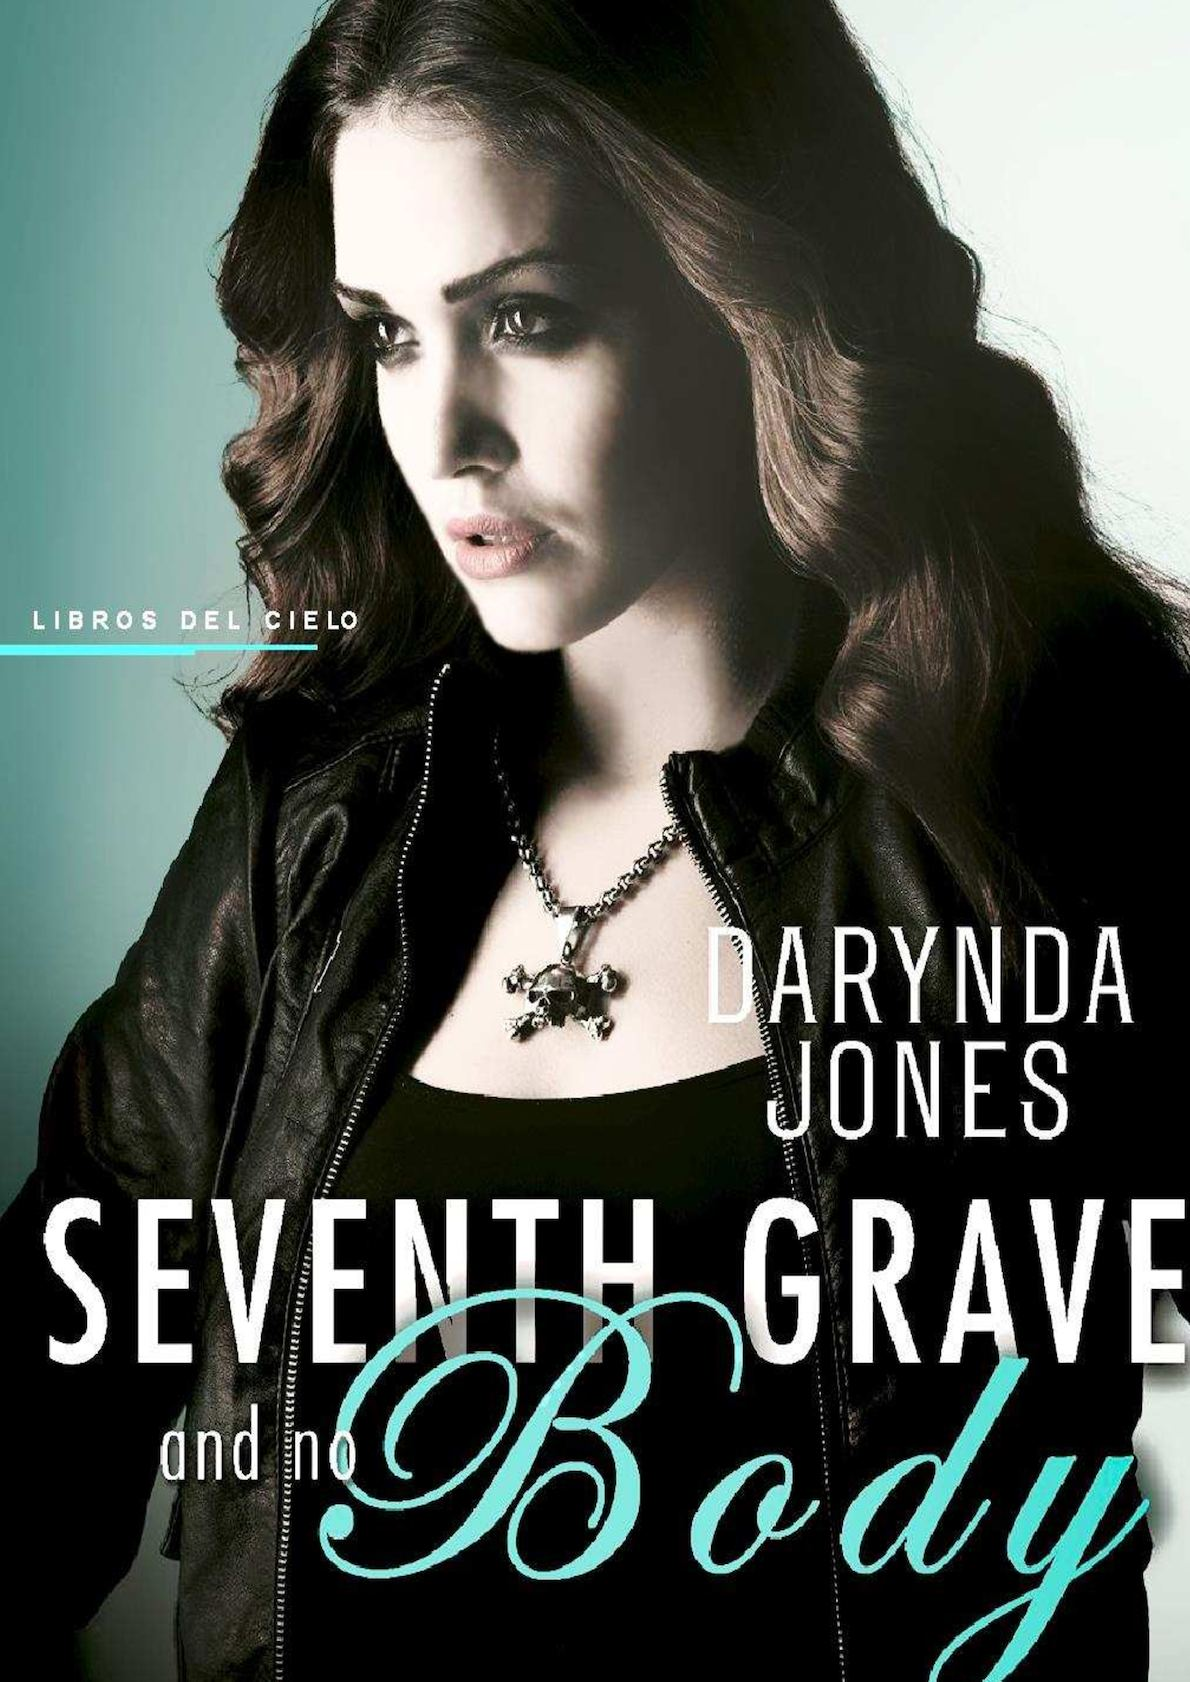 Calaméo - 7 Seventh Grave And No Body Darynda Jones c3fee5d6ee7d